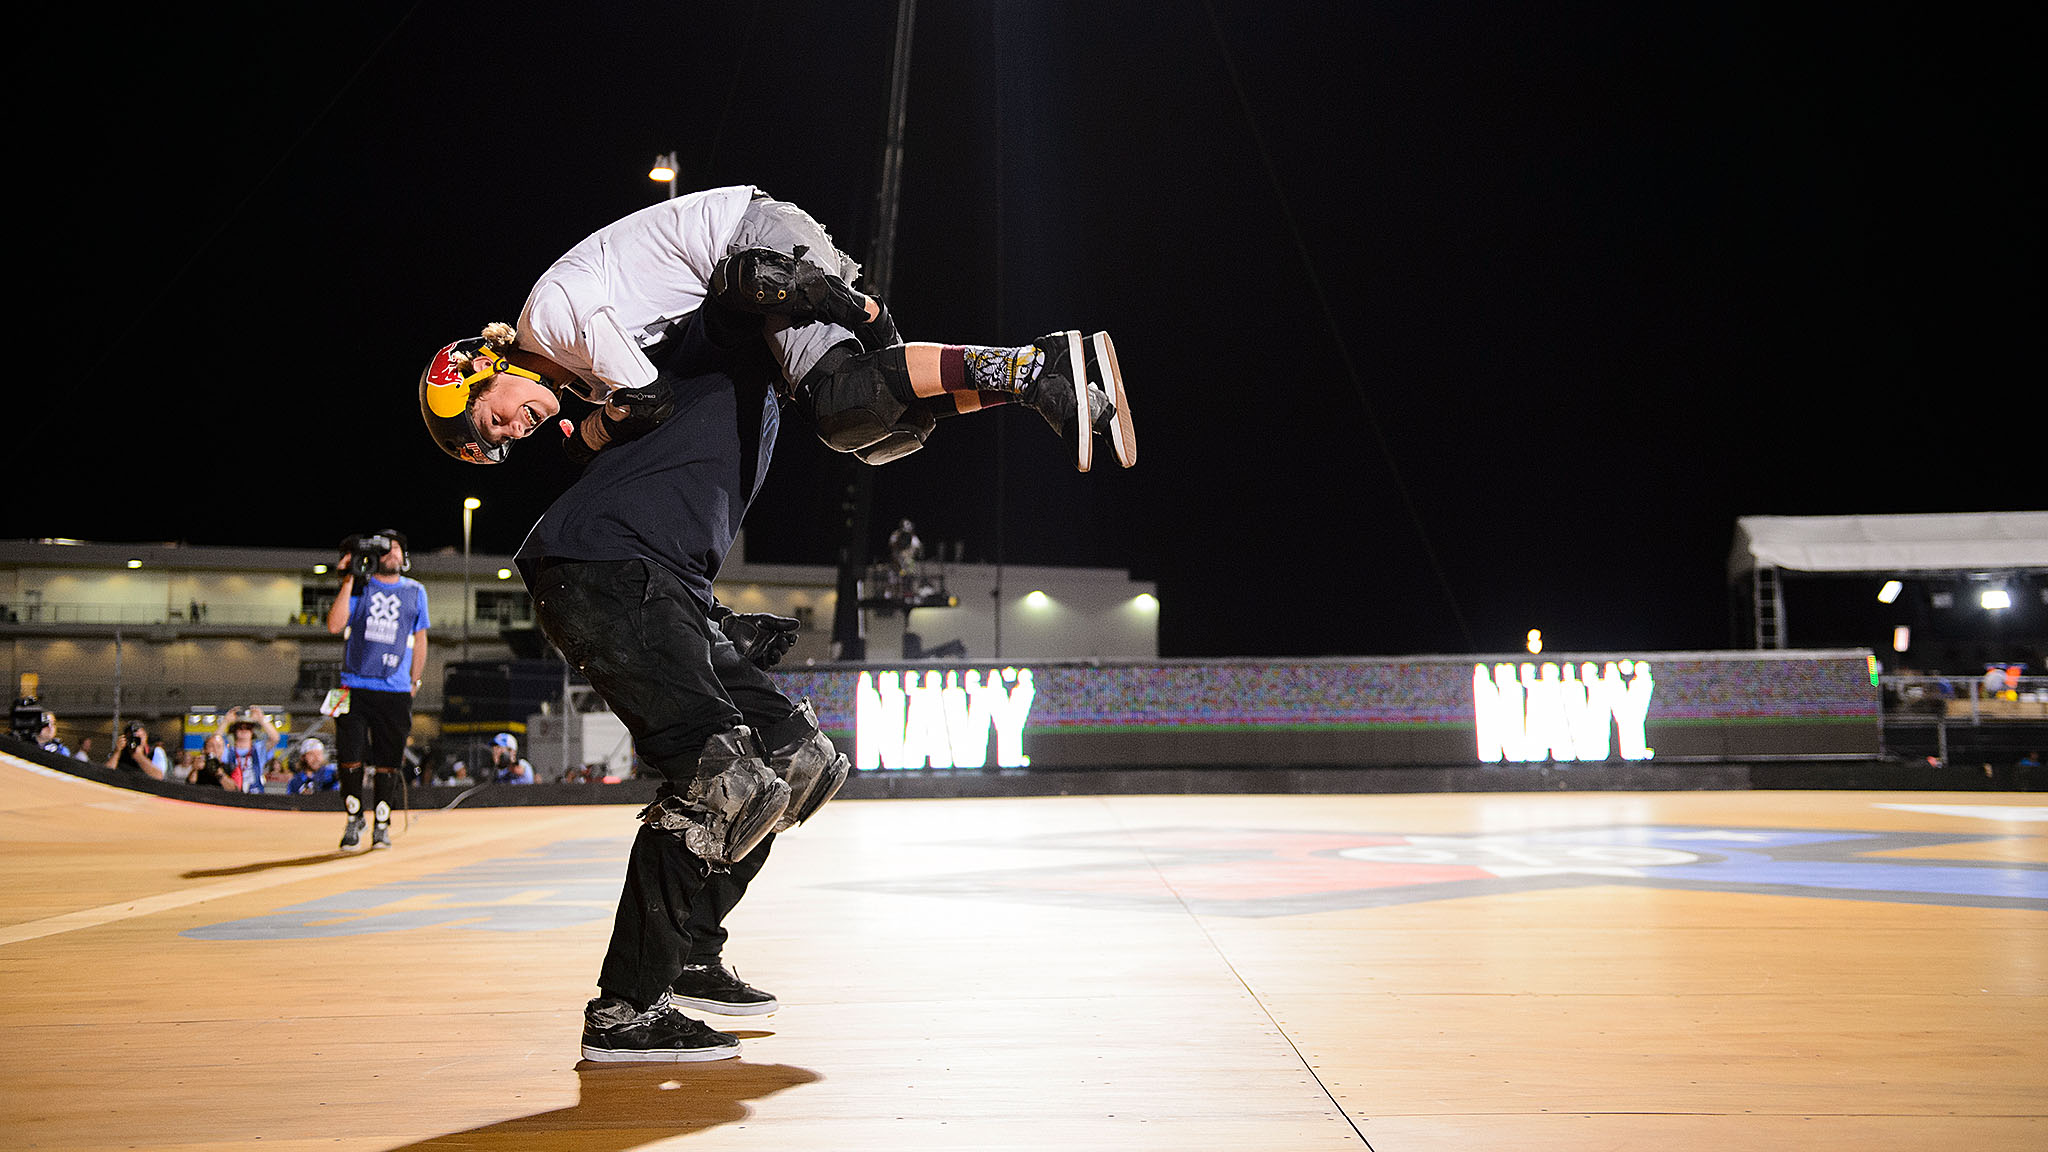 Fourteen-year-old Tom Schaar became the youngest person to win a Skateboard Big Air medal on Friday, upsetting veteran Big Air skater and MegaRamp pioneer Bob Burnquist, who happily settled for silver, as evidenced here.